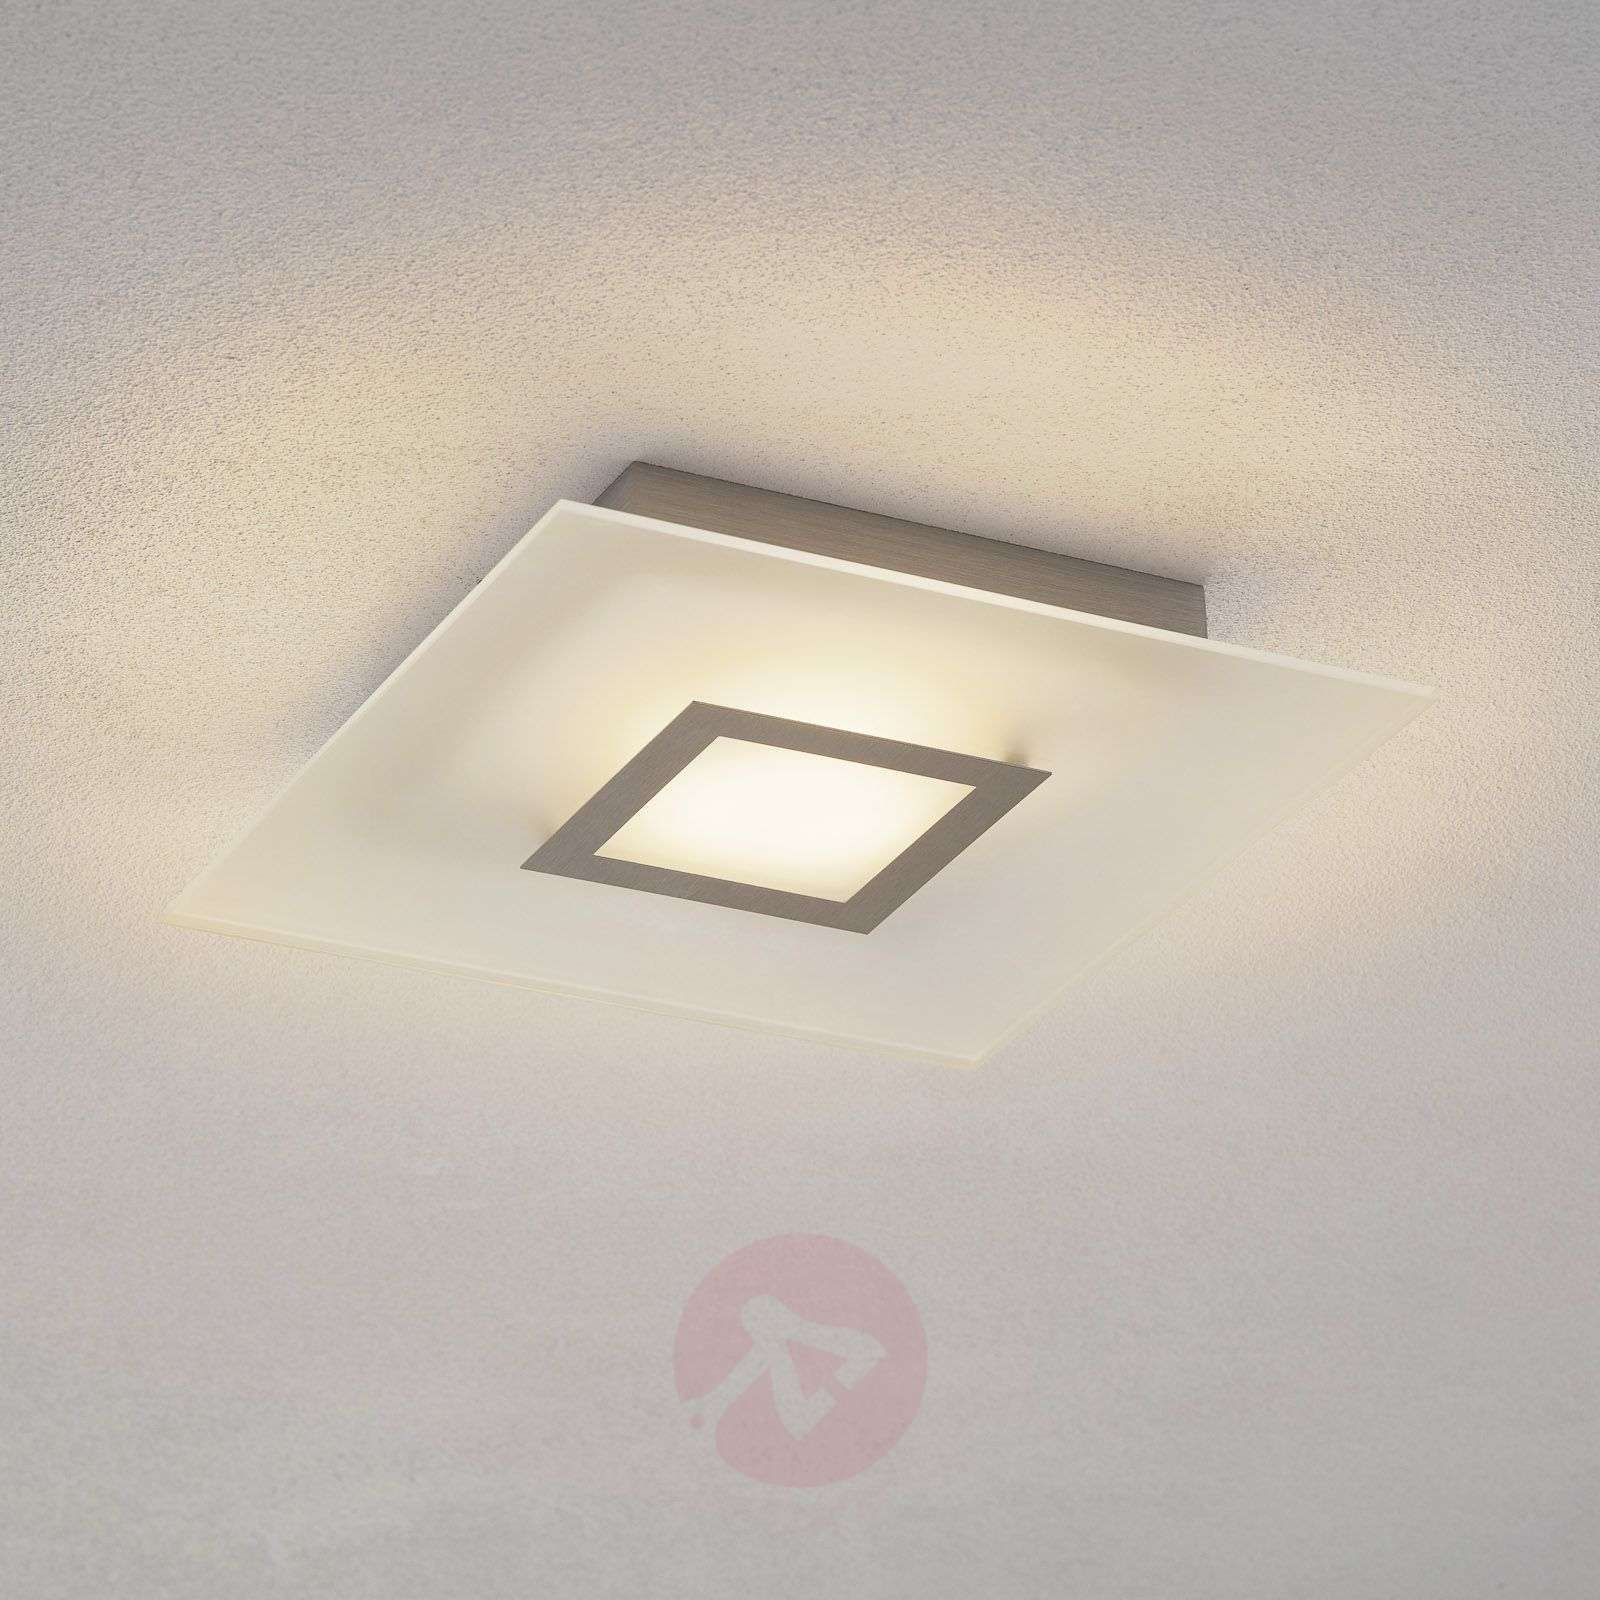 Plafoniera A Led Quadrata : Acquista flat plafoniera led quadrata dimmerabile lampade